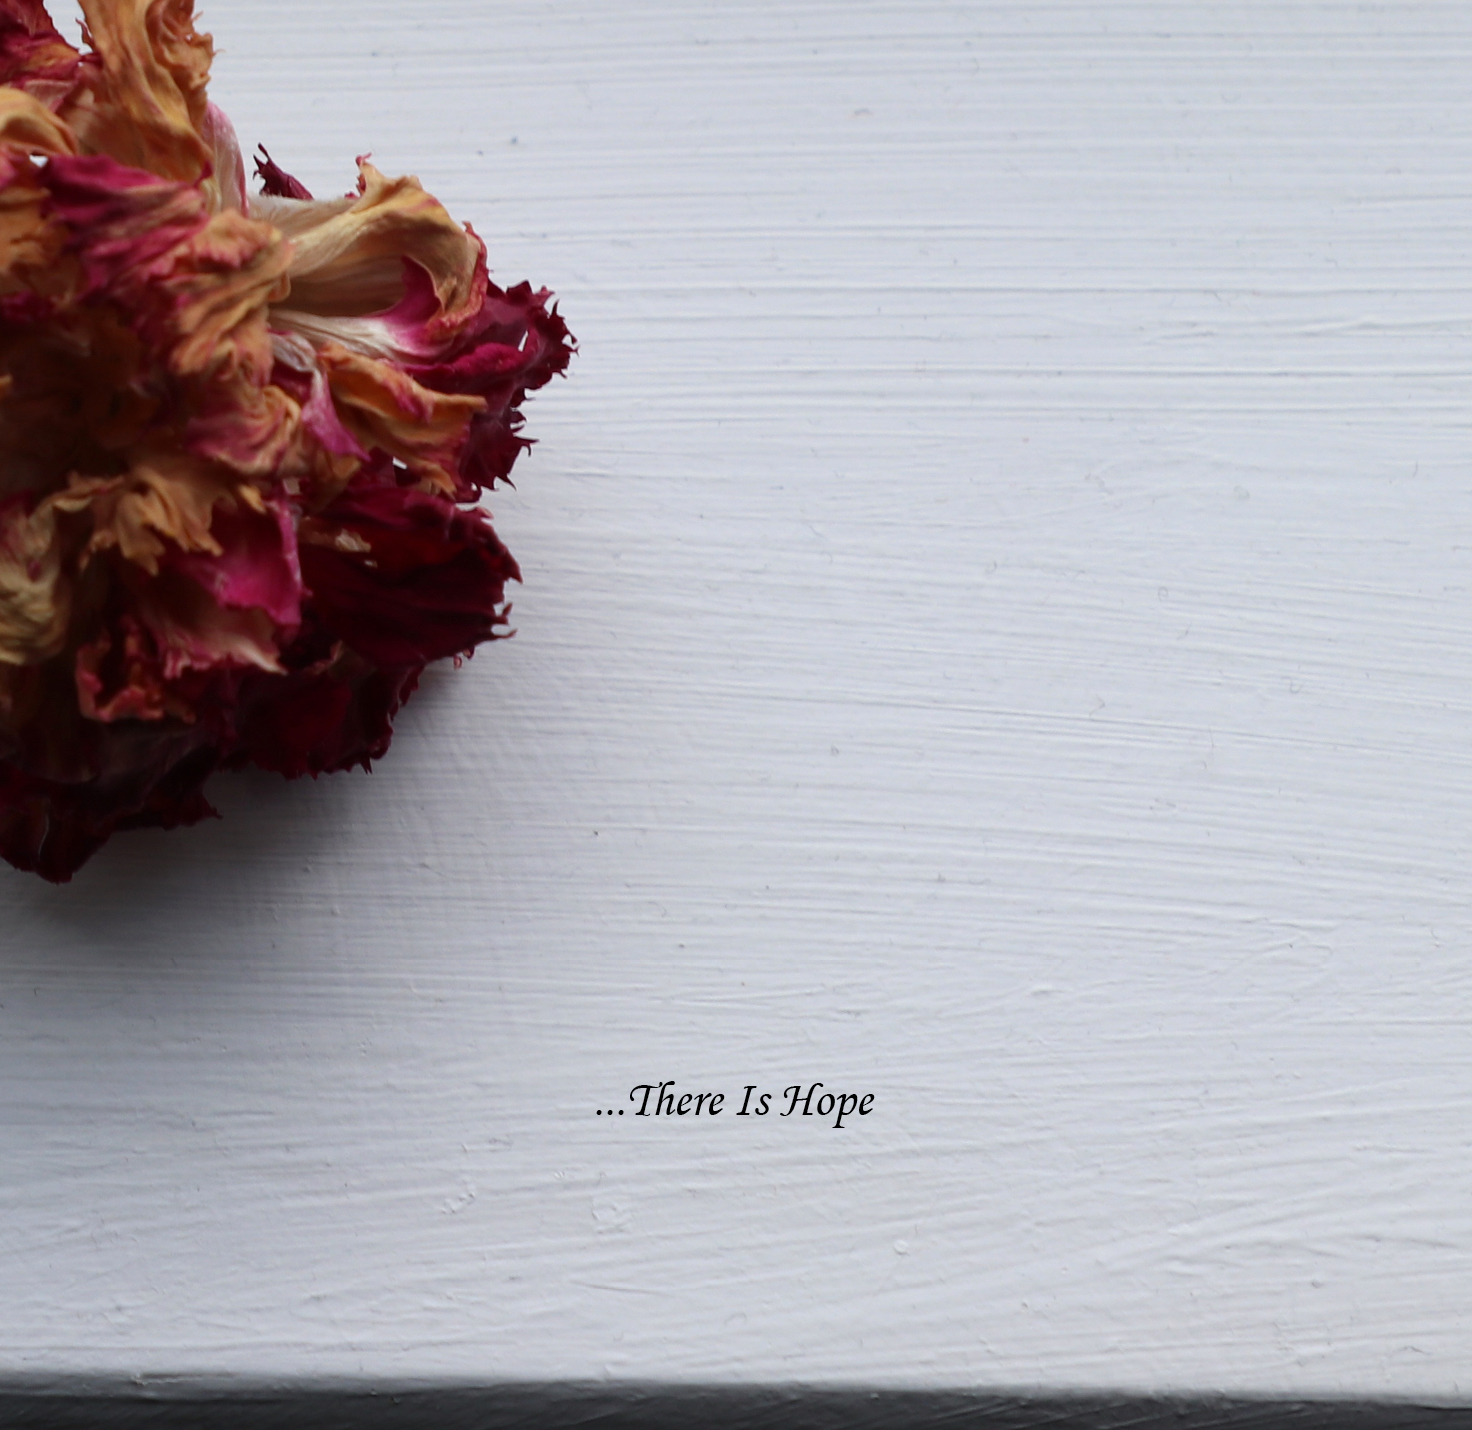 There Is Hope - For bandcamp